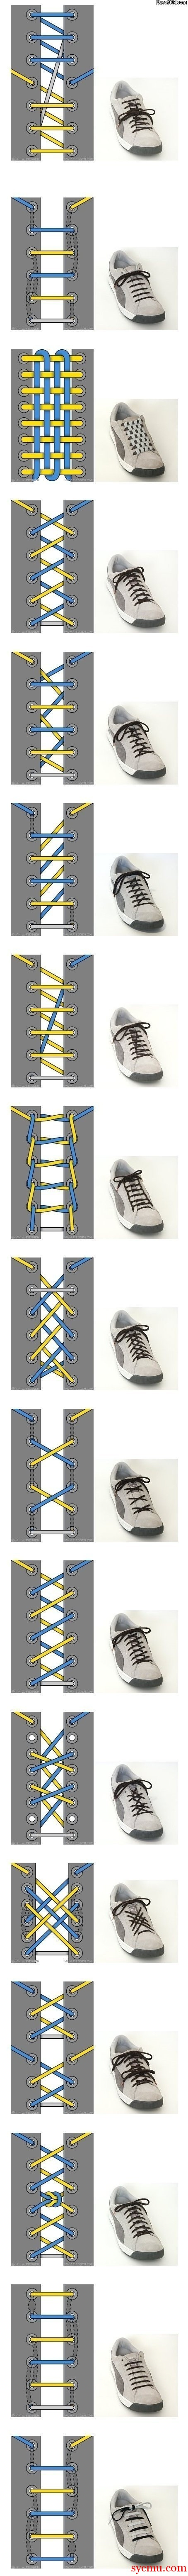 17 different ways to tie your shoelace